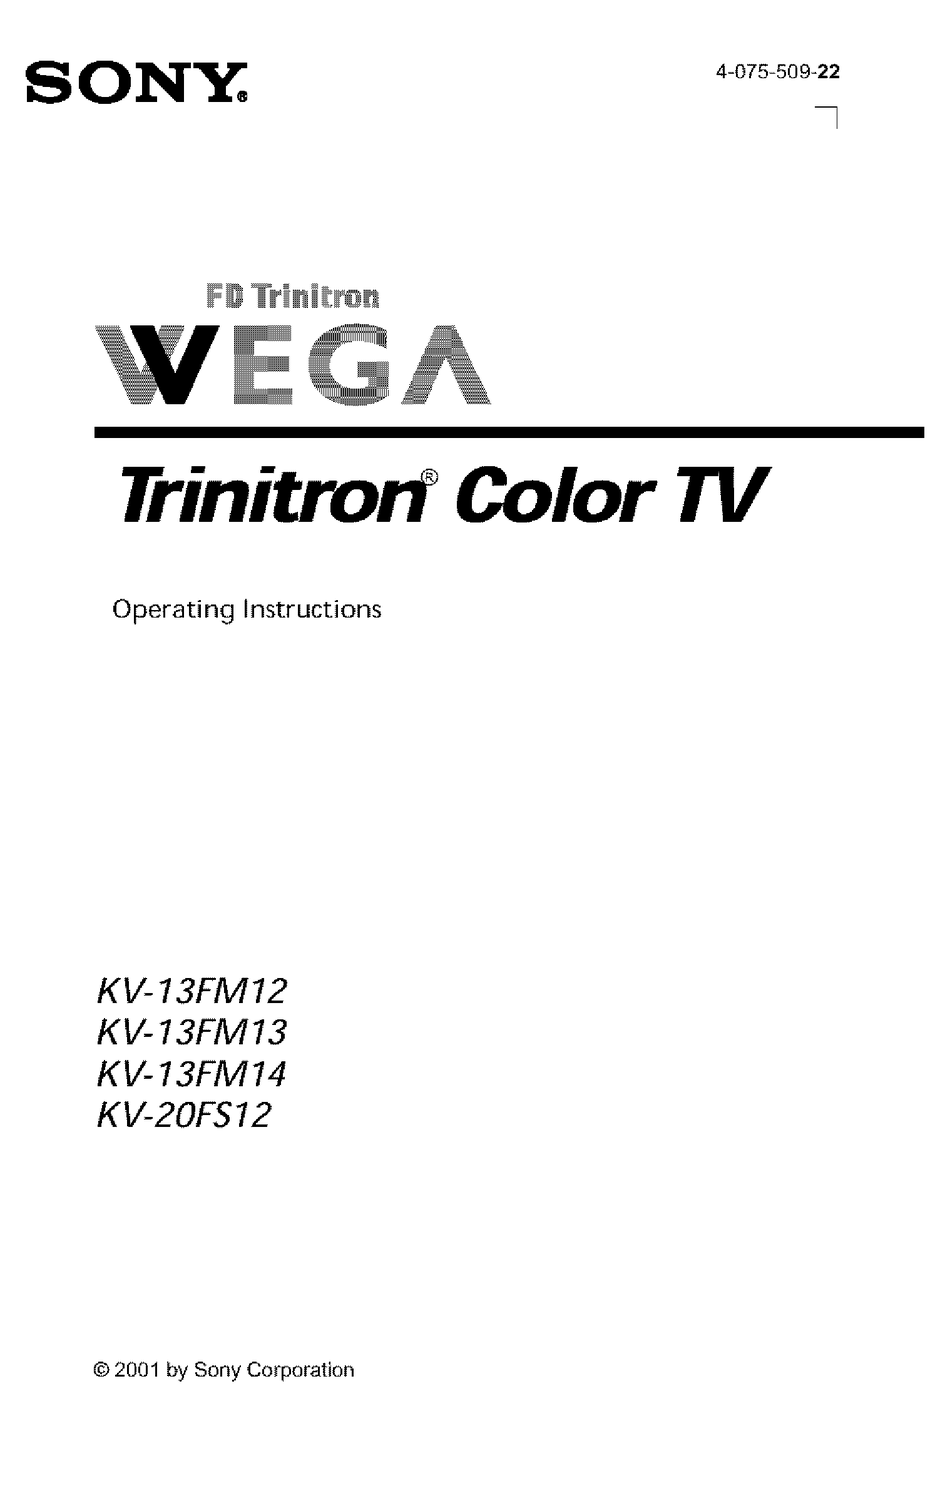 SONY FD TRINITRON WEGA KV-13FM14 OPERATING INSTRUCTIONS